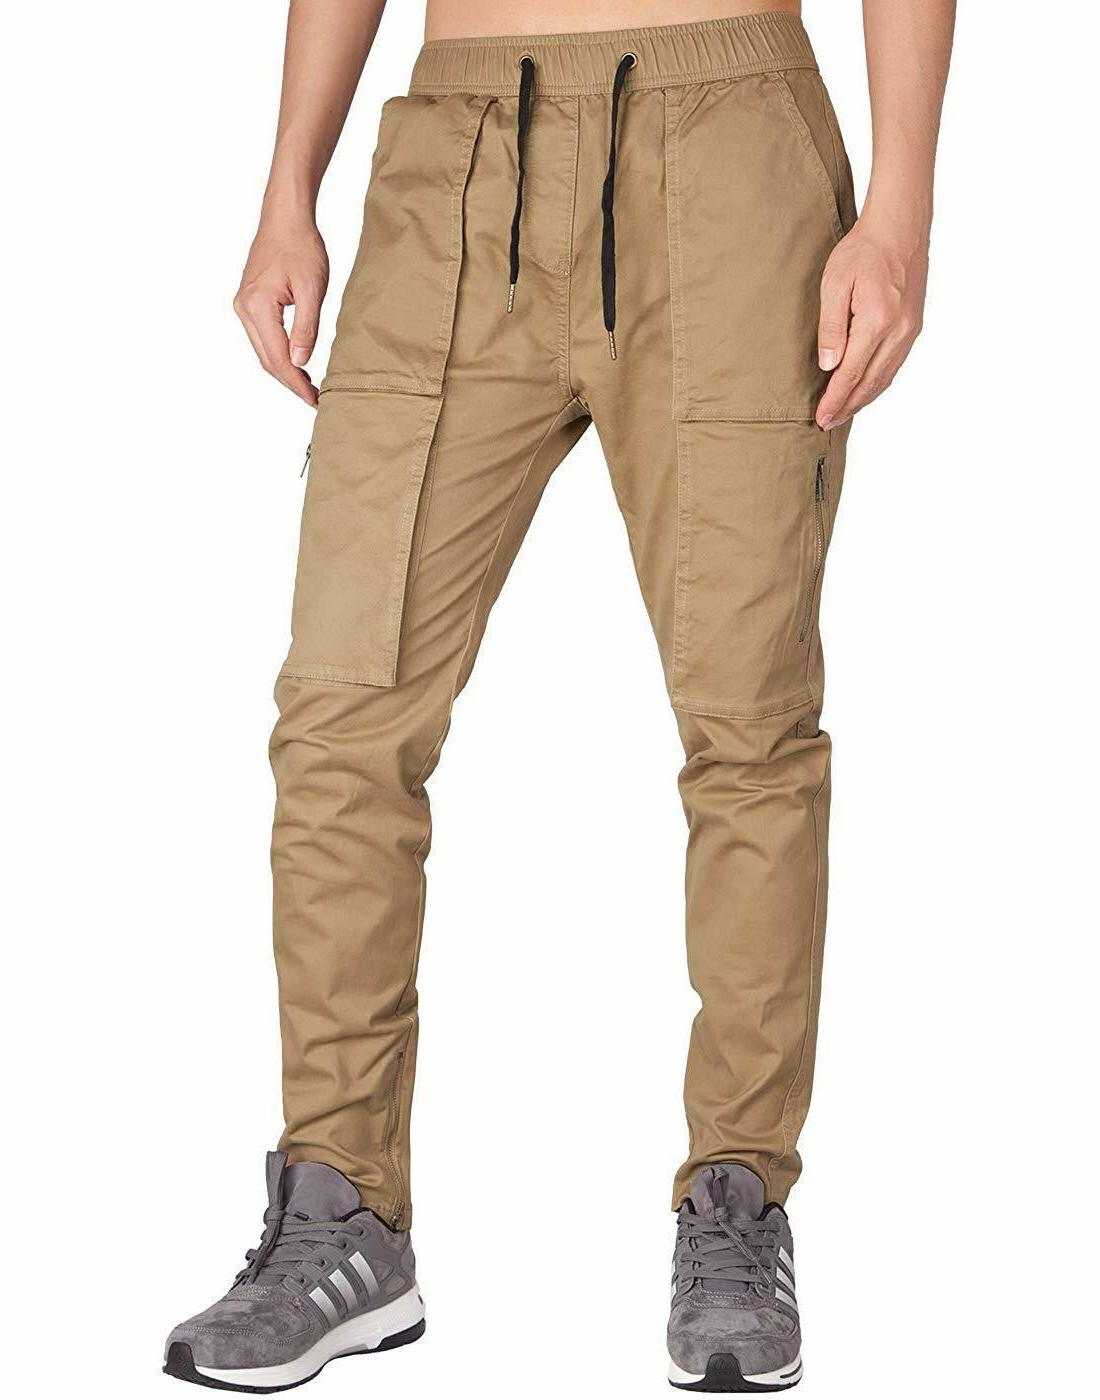 ITALY MORN Men's Cargo Slim Fit Ankle Zipper